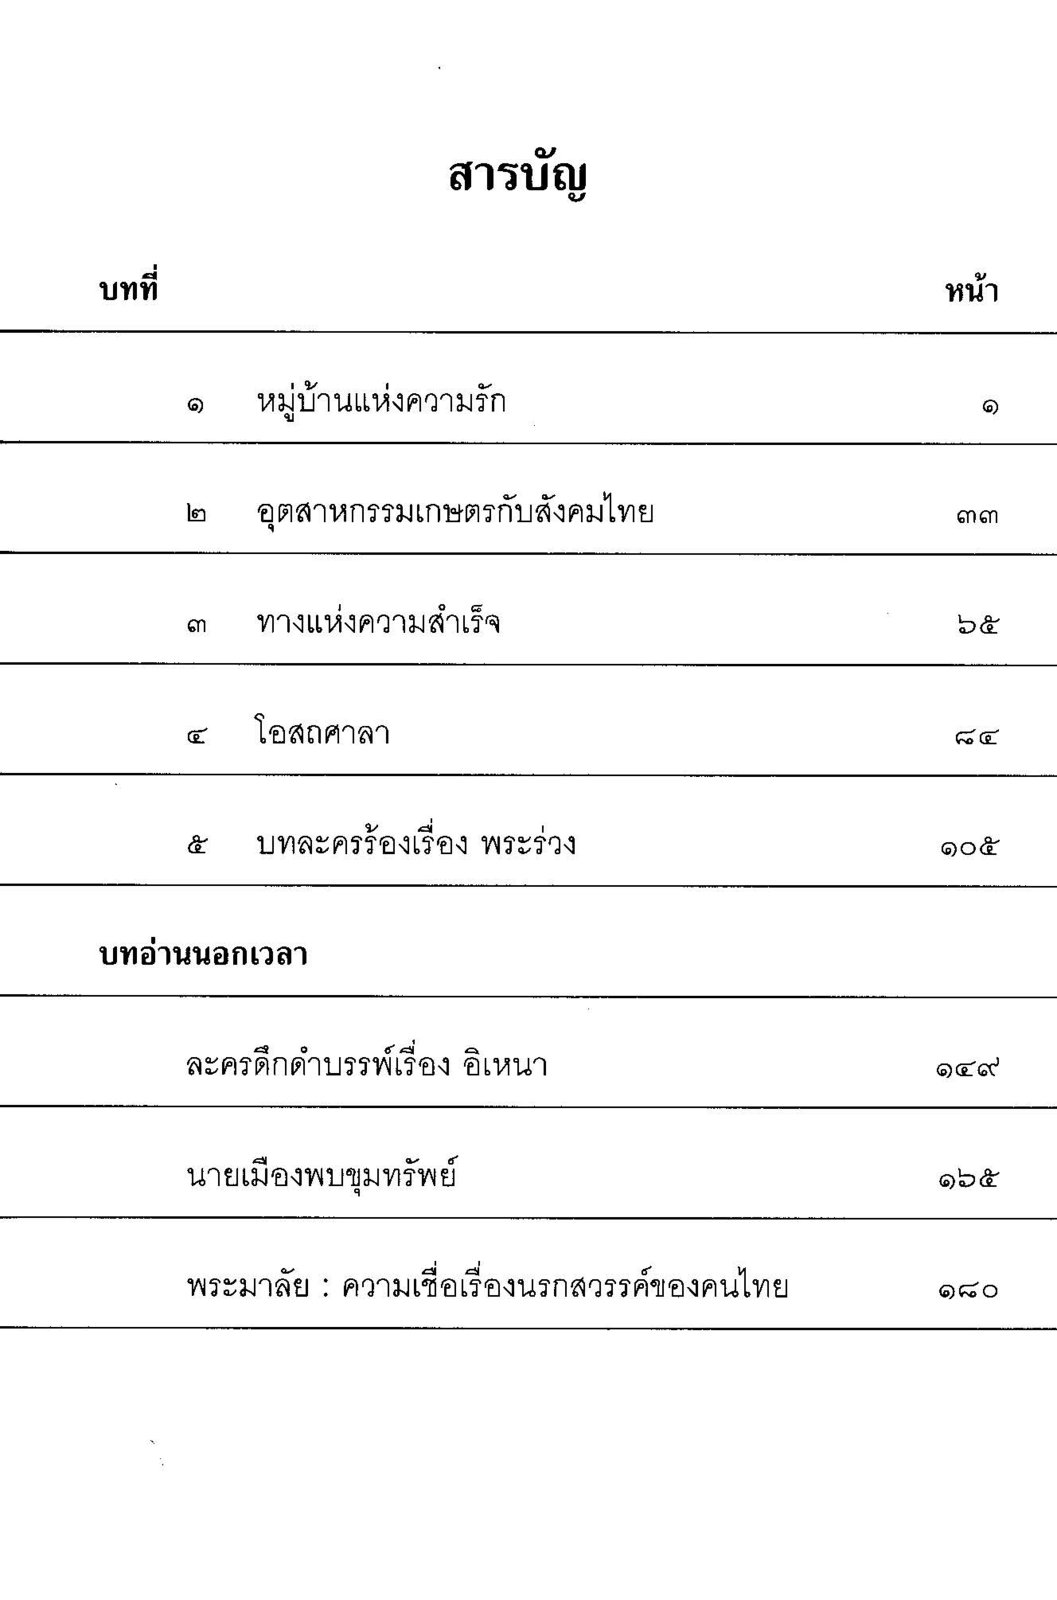 ebook_thai_sect_2_65-990_Page_008.jpg